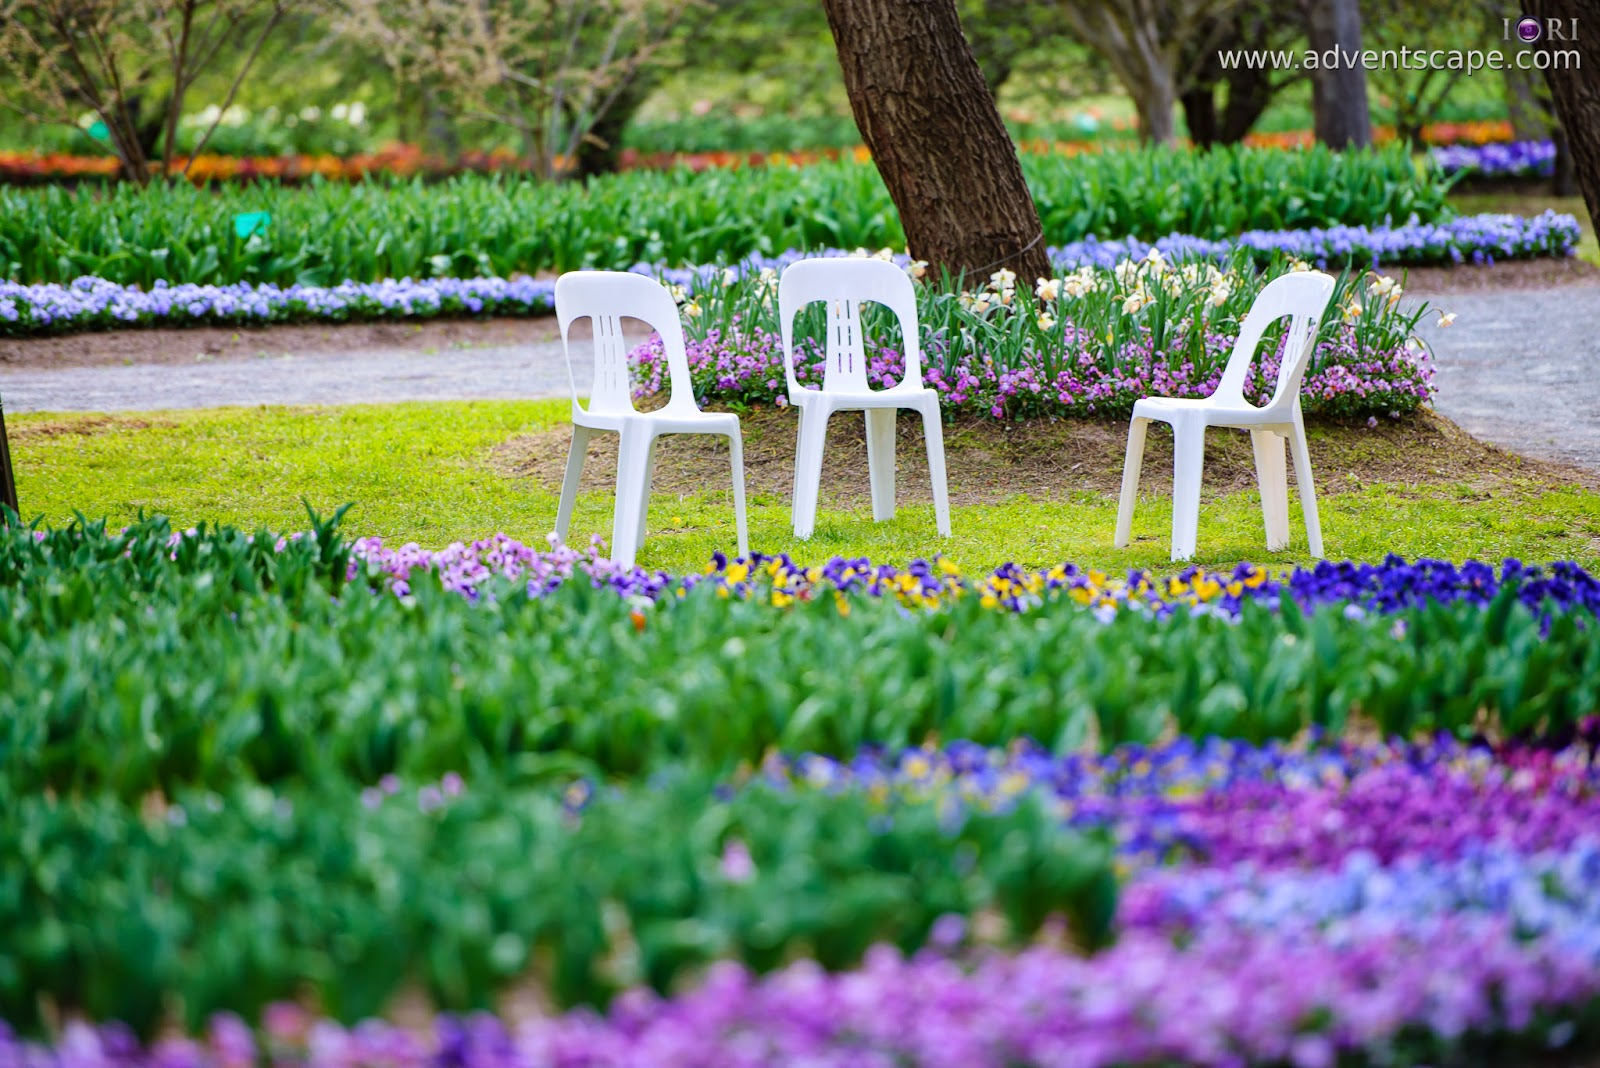 Philip Avellana, adventscape, iori, Tulip Top Gardens, garden, spring, NSW, New South Wales, Sutton, Old Federal Highway, Bywong, 2621, chairs, monobloc